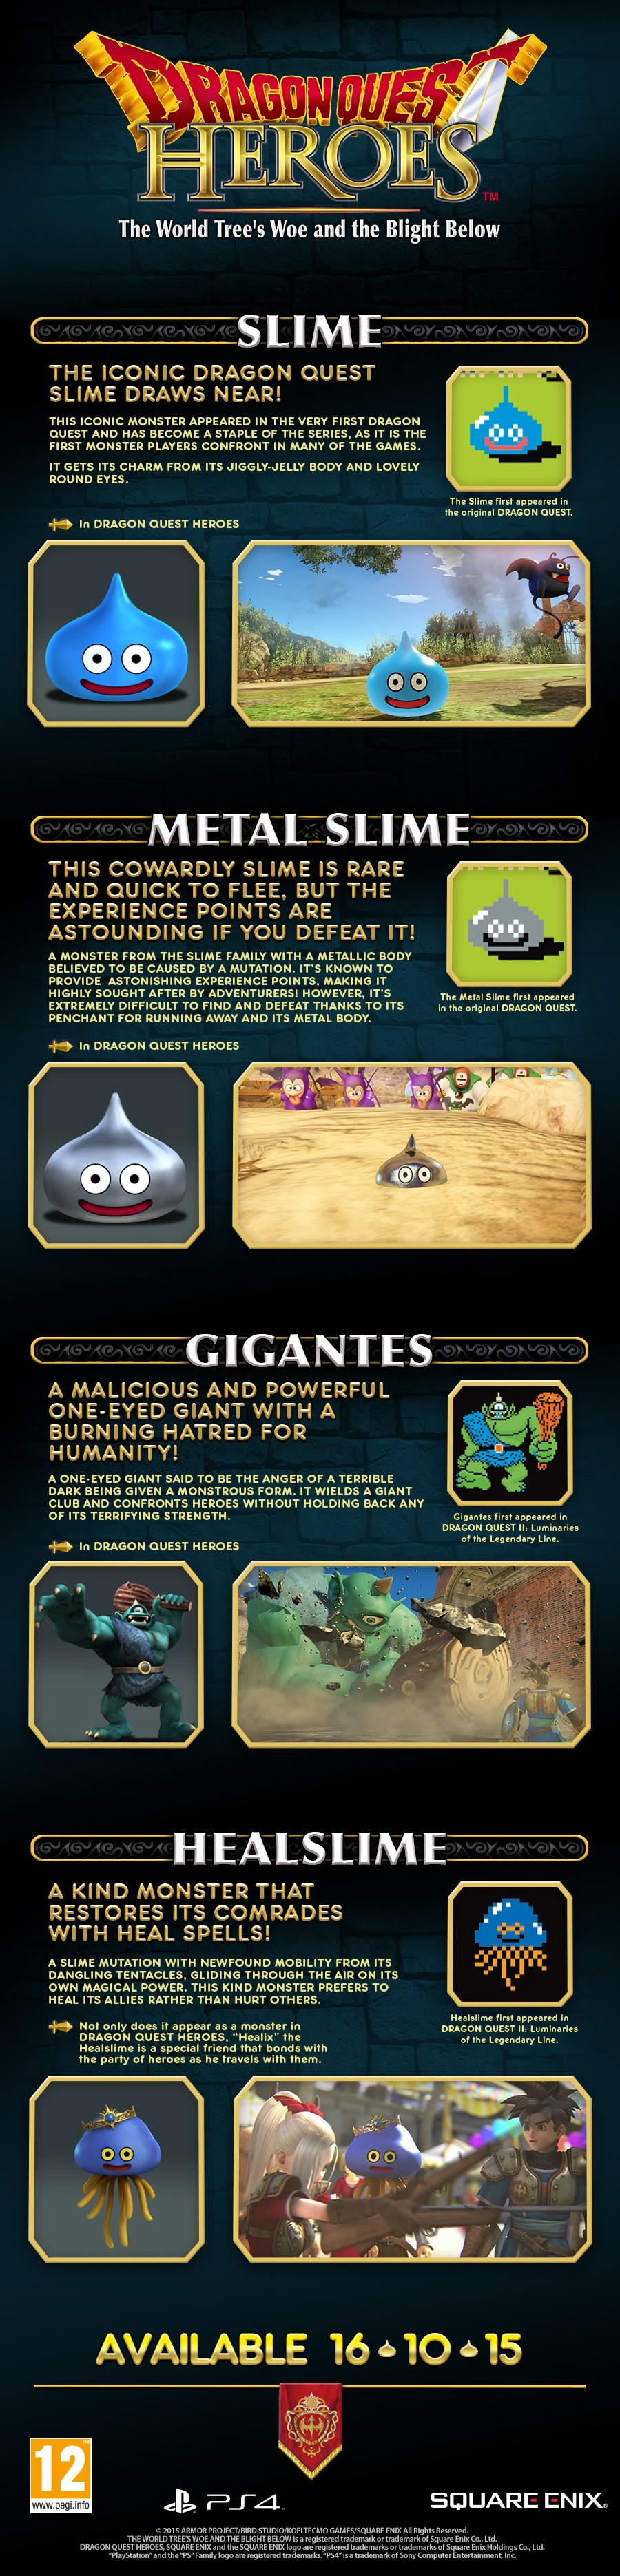 dragon-quest-heroes-graphic-01